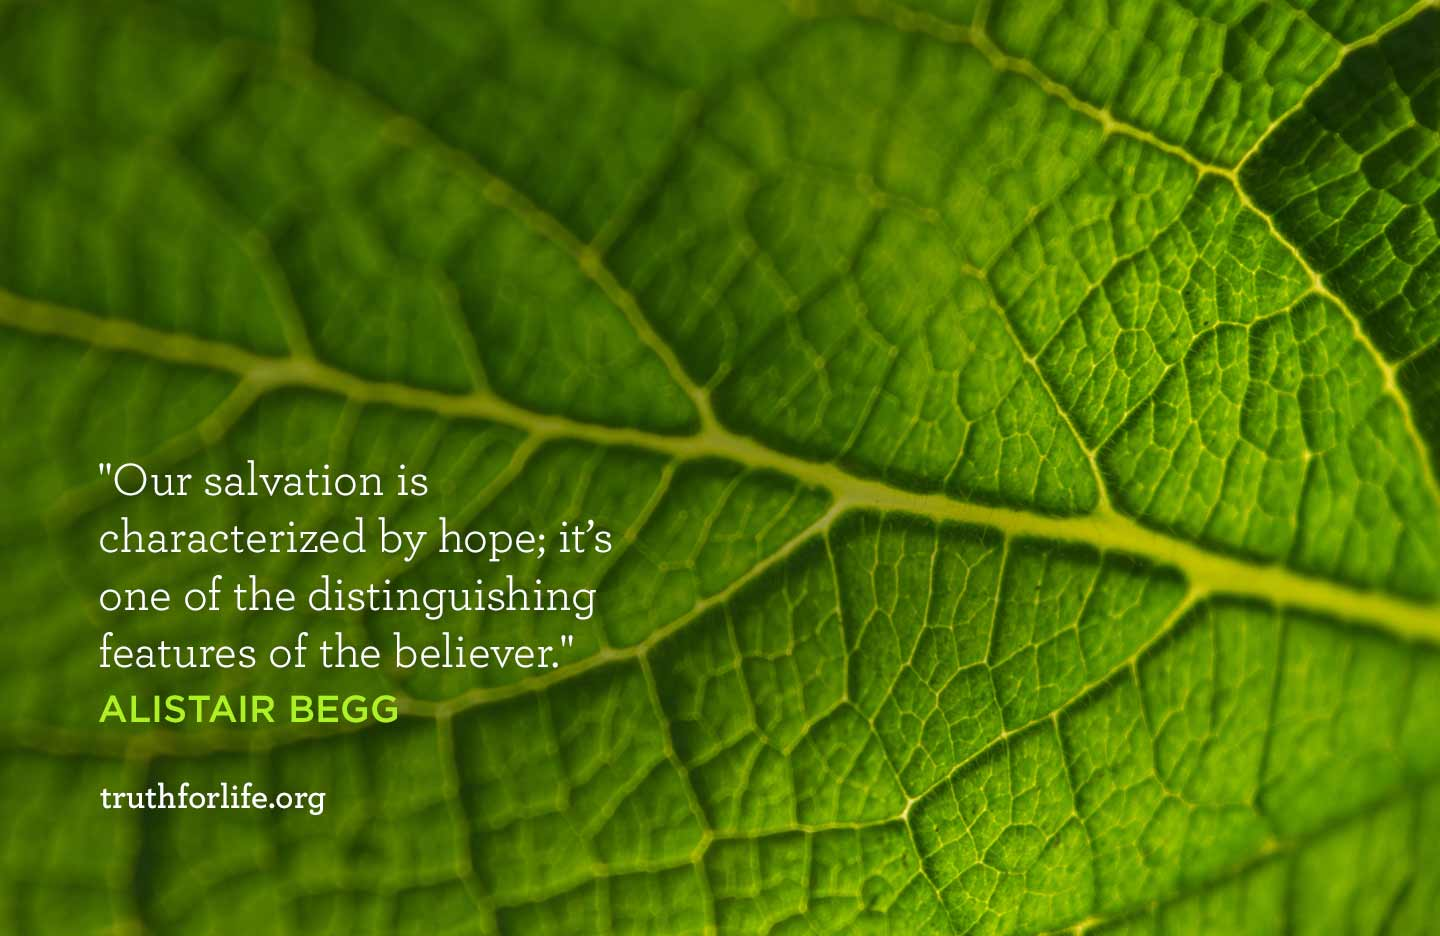 Our salvation is characterized by hope; it's one of the distinguishing features of the believer